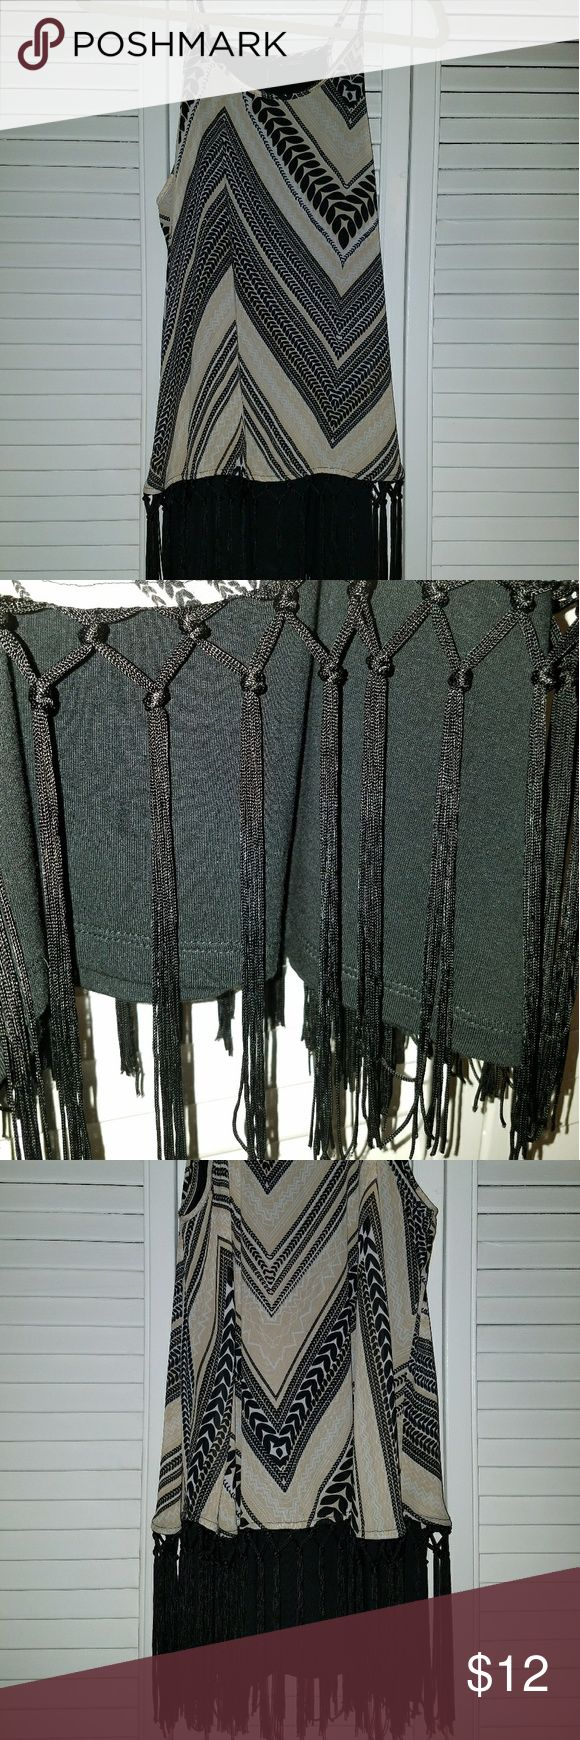 NEW DIRECTIONS fringe top Chevron print creams and black. Black fringe bottom. New without tags. new directions Tops Tank Tops